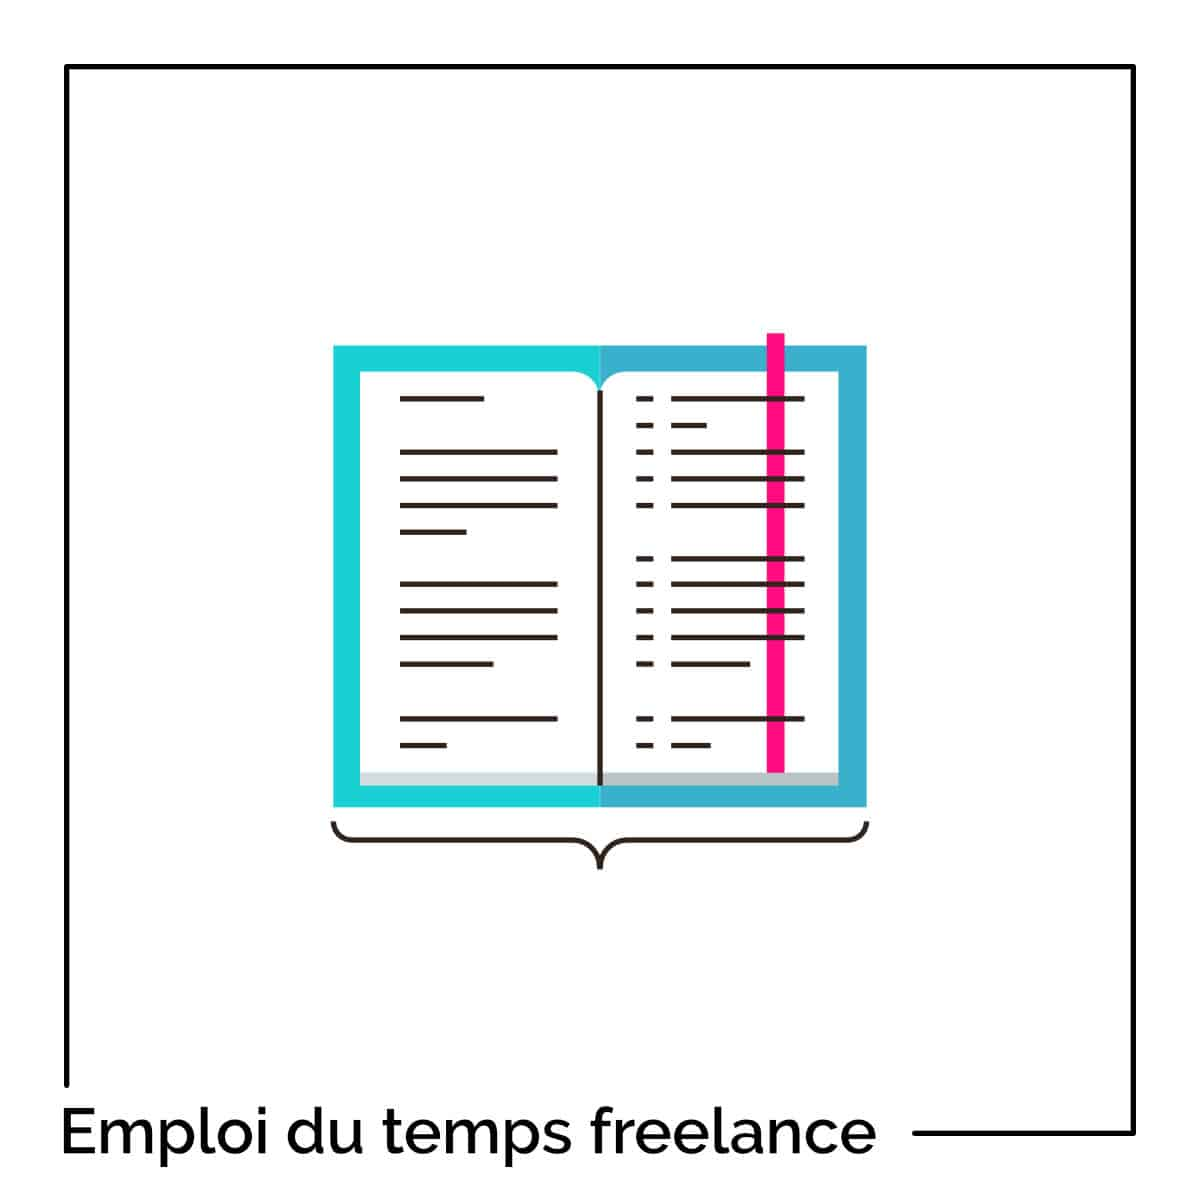 Comment organiser son emploi du temps freelance ?